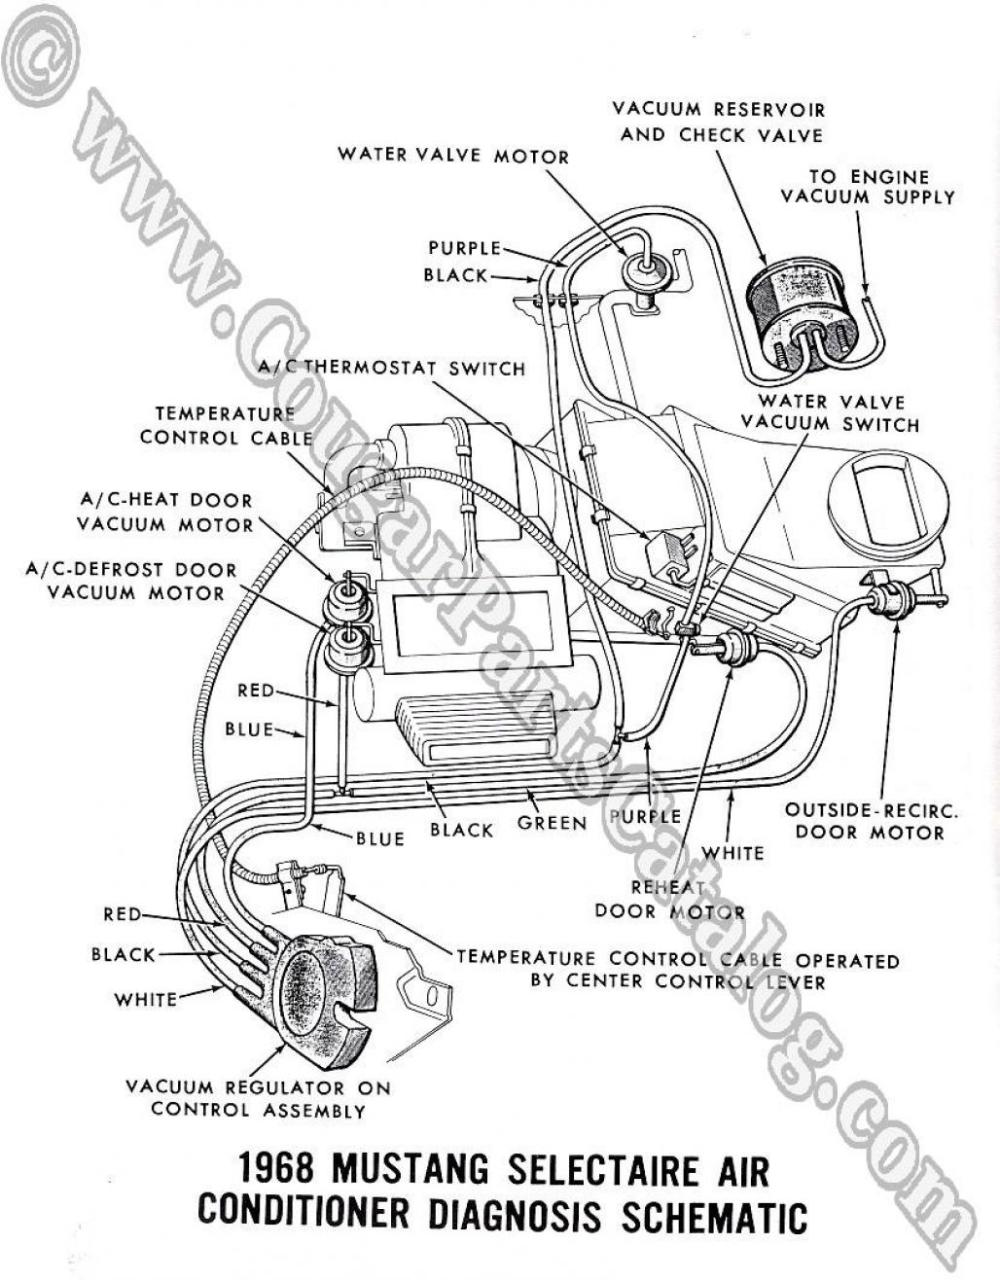 medium resolution of tags mini cooper manual transmission diagram 2004 mini cooper engine diagram mini cooper s engine diagram 04 ford escape exhaust diagram mini cooper s